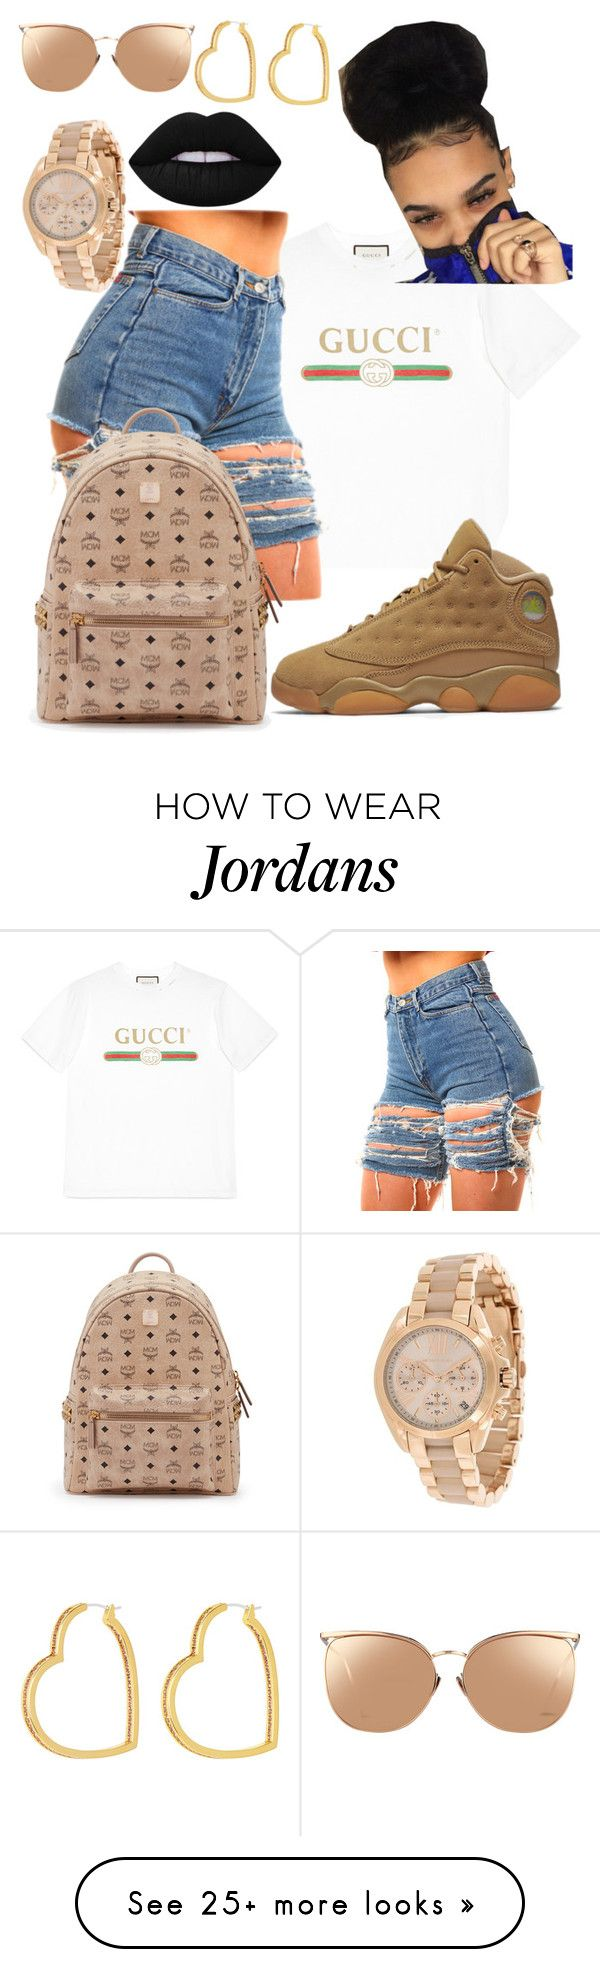 """""""You on fire """" by vjur-tw on Polyvore featuring Gucci, NIKE, MCM, Linda Farrow, Lime Crime, MICHAEL Michael Kors and Henri Bendel"""